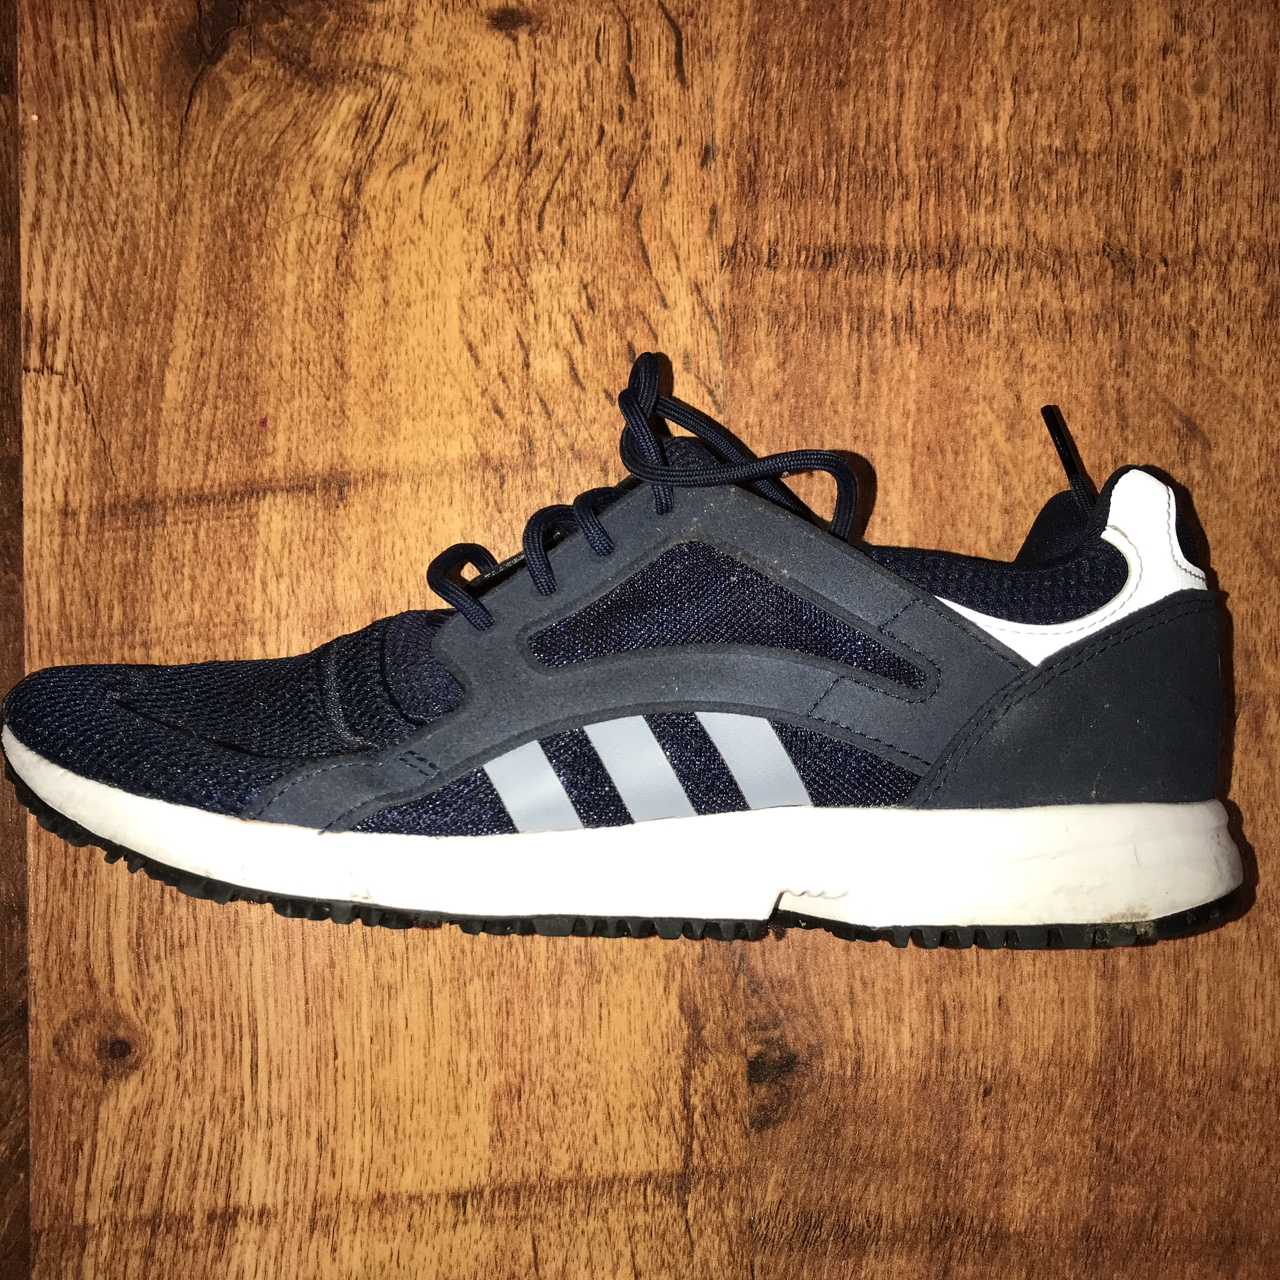 Retro Vintage Adidas Navy Blue Trainers in good...